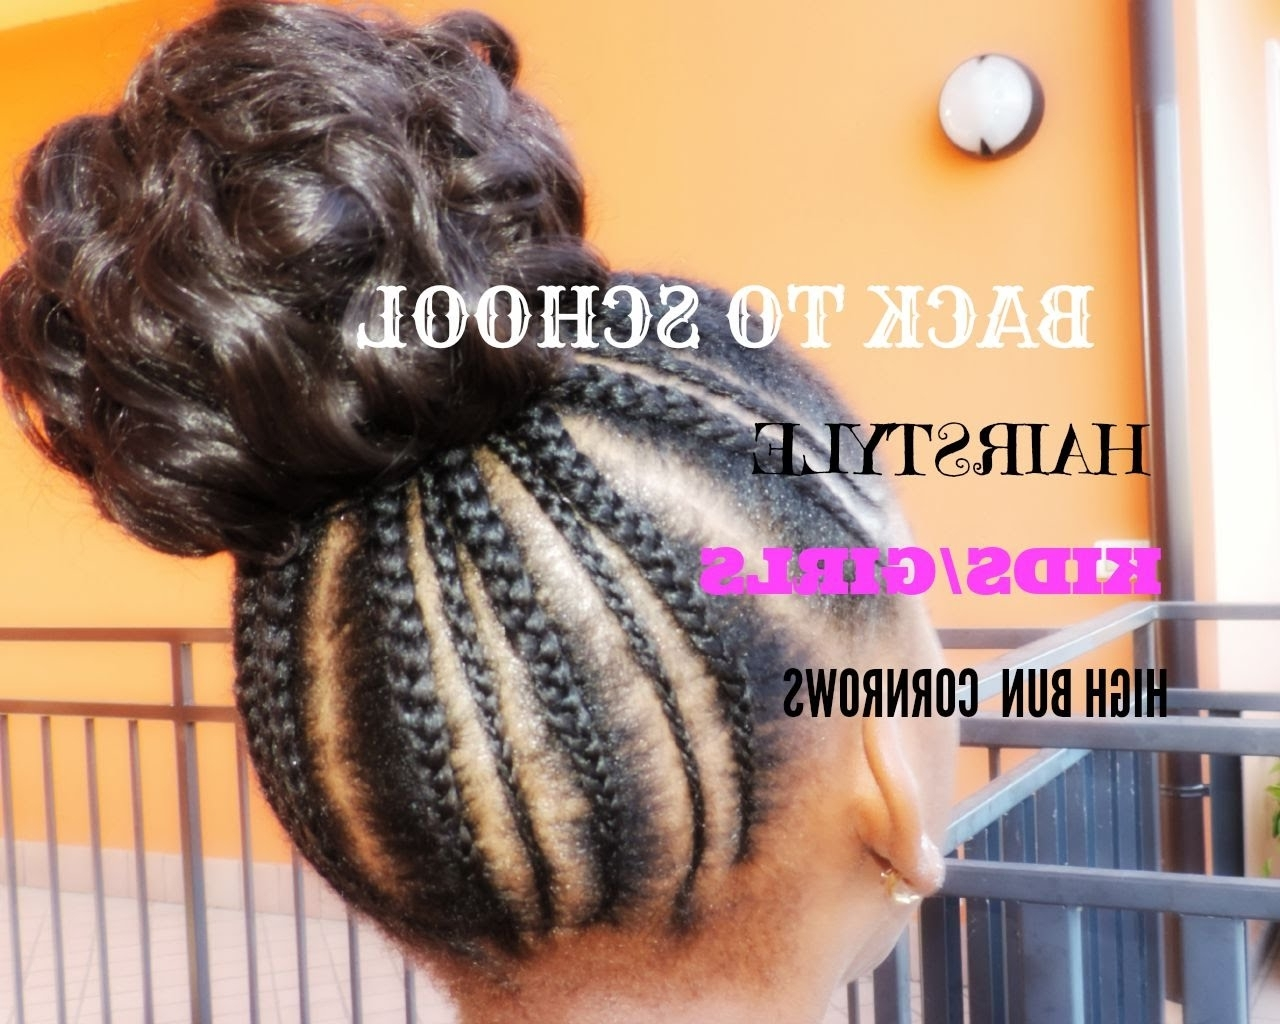 Favorite Cornrows Hairstyles For School For Back To School Hairstyle For Kids/girls ( Simple And Cute) #1 – Youtube (View 9 of 15)